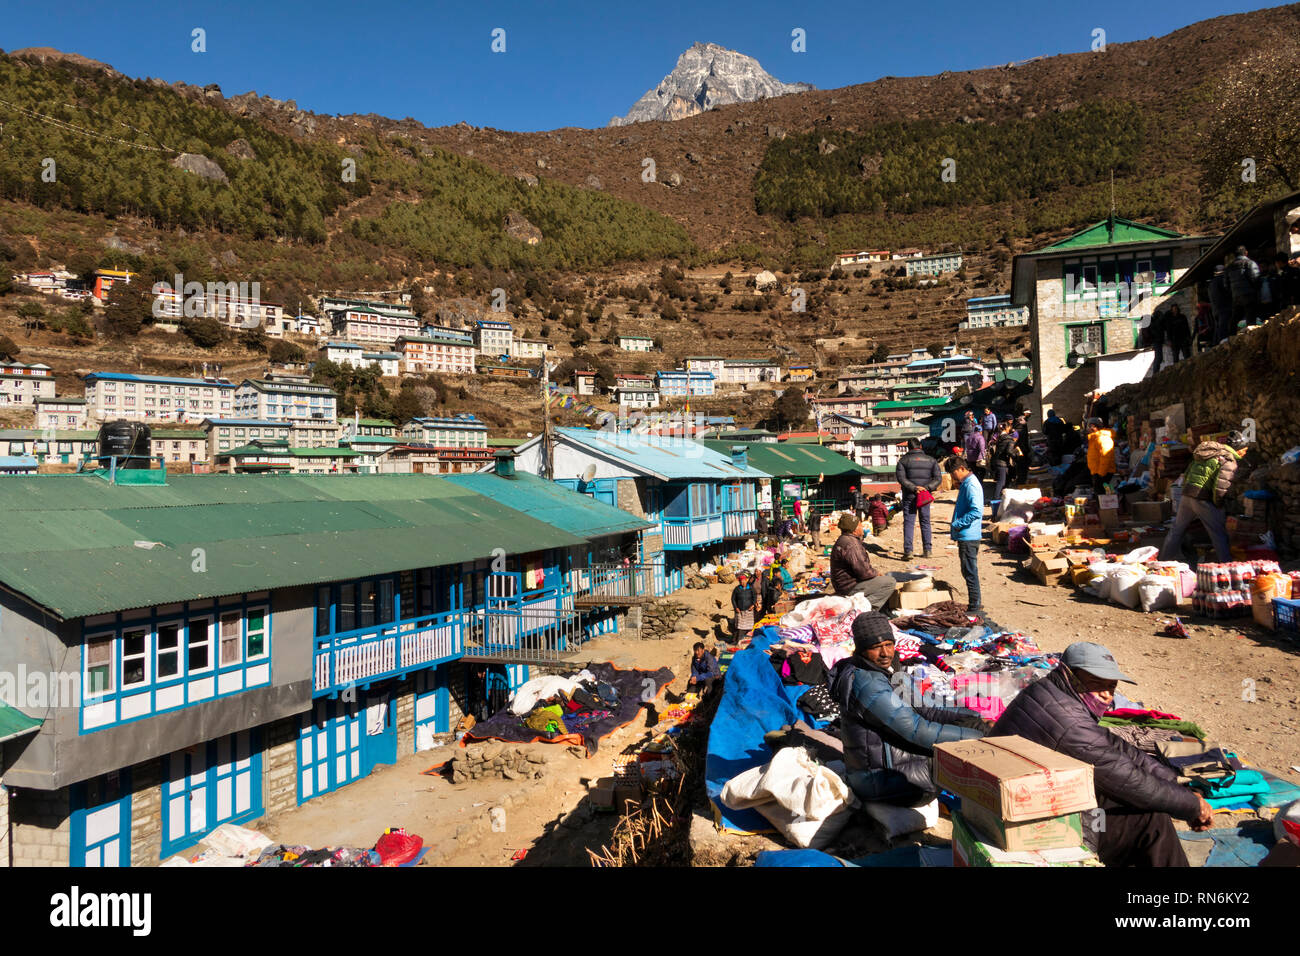 Nepal, Namche Bazaar, Market, local shoppers and traders in sunshine - Stock Image